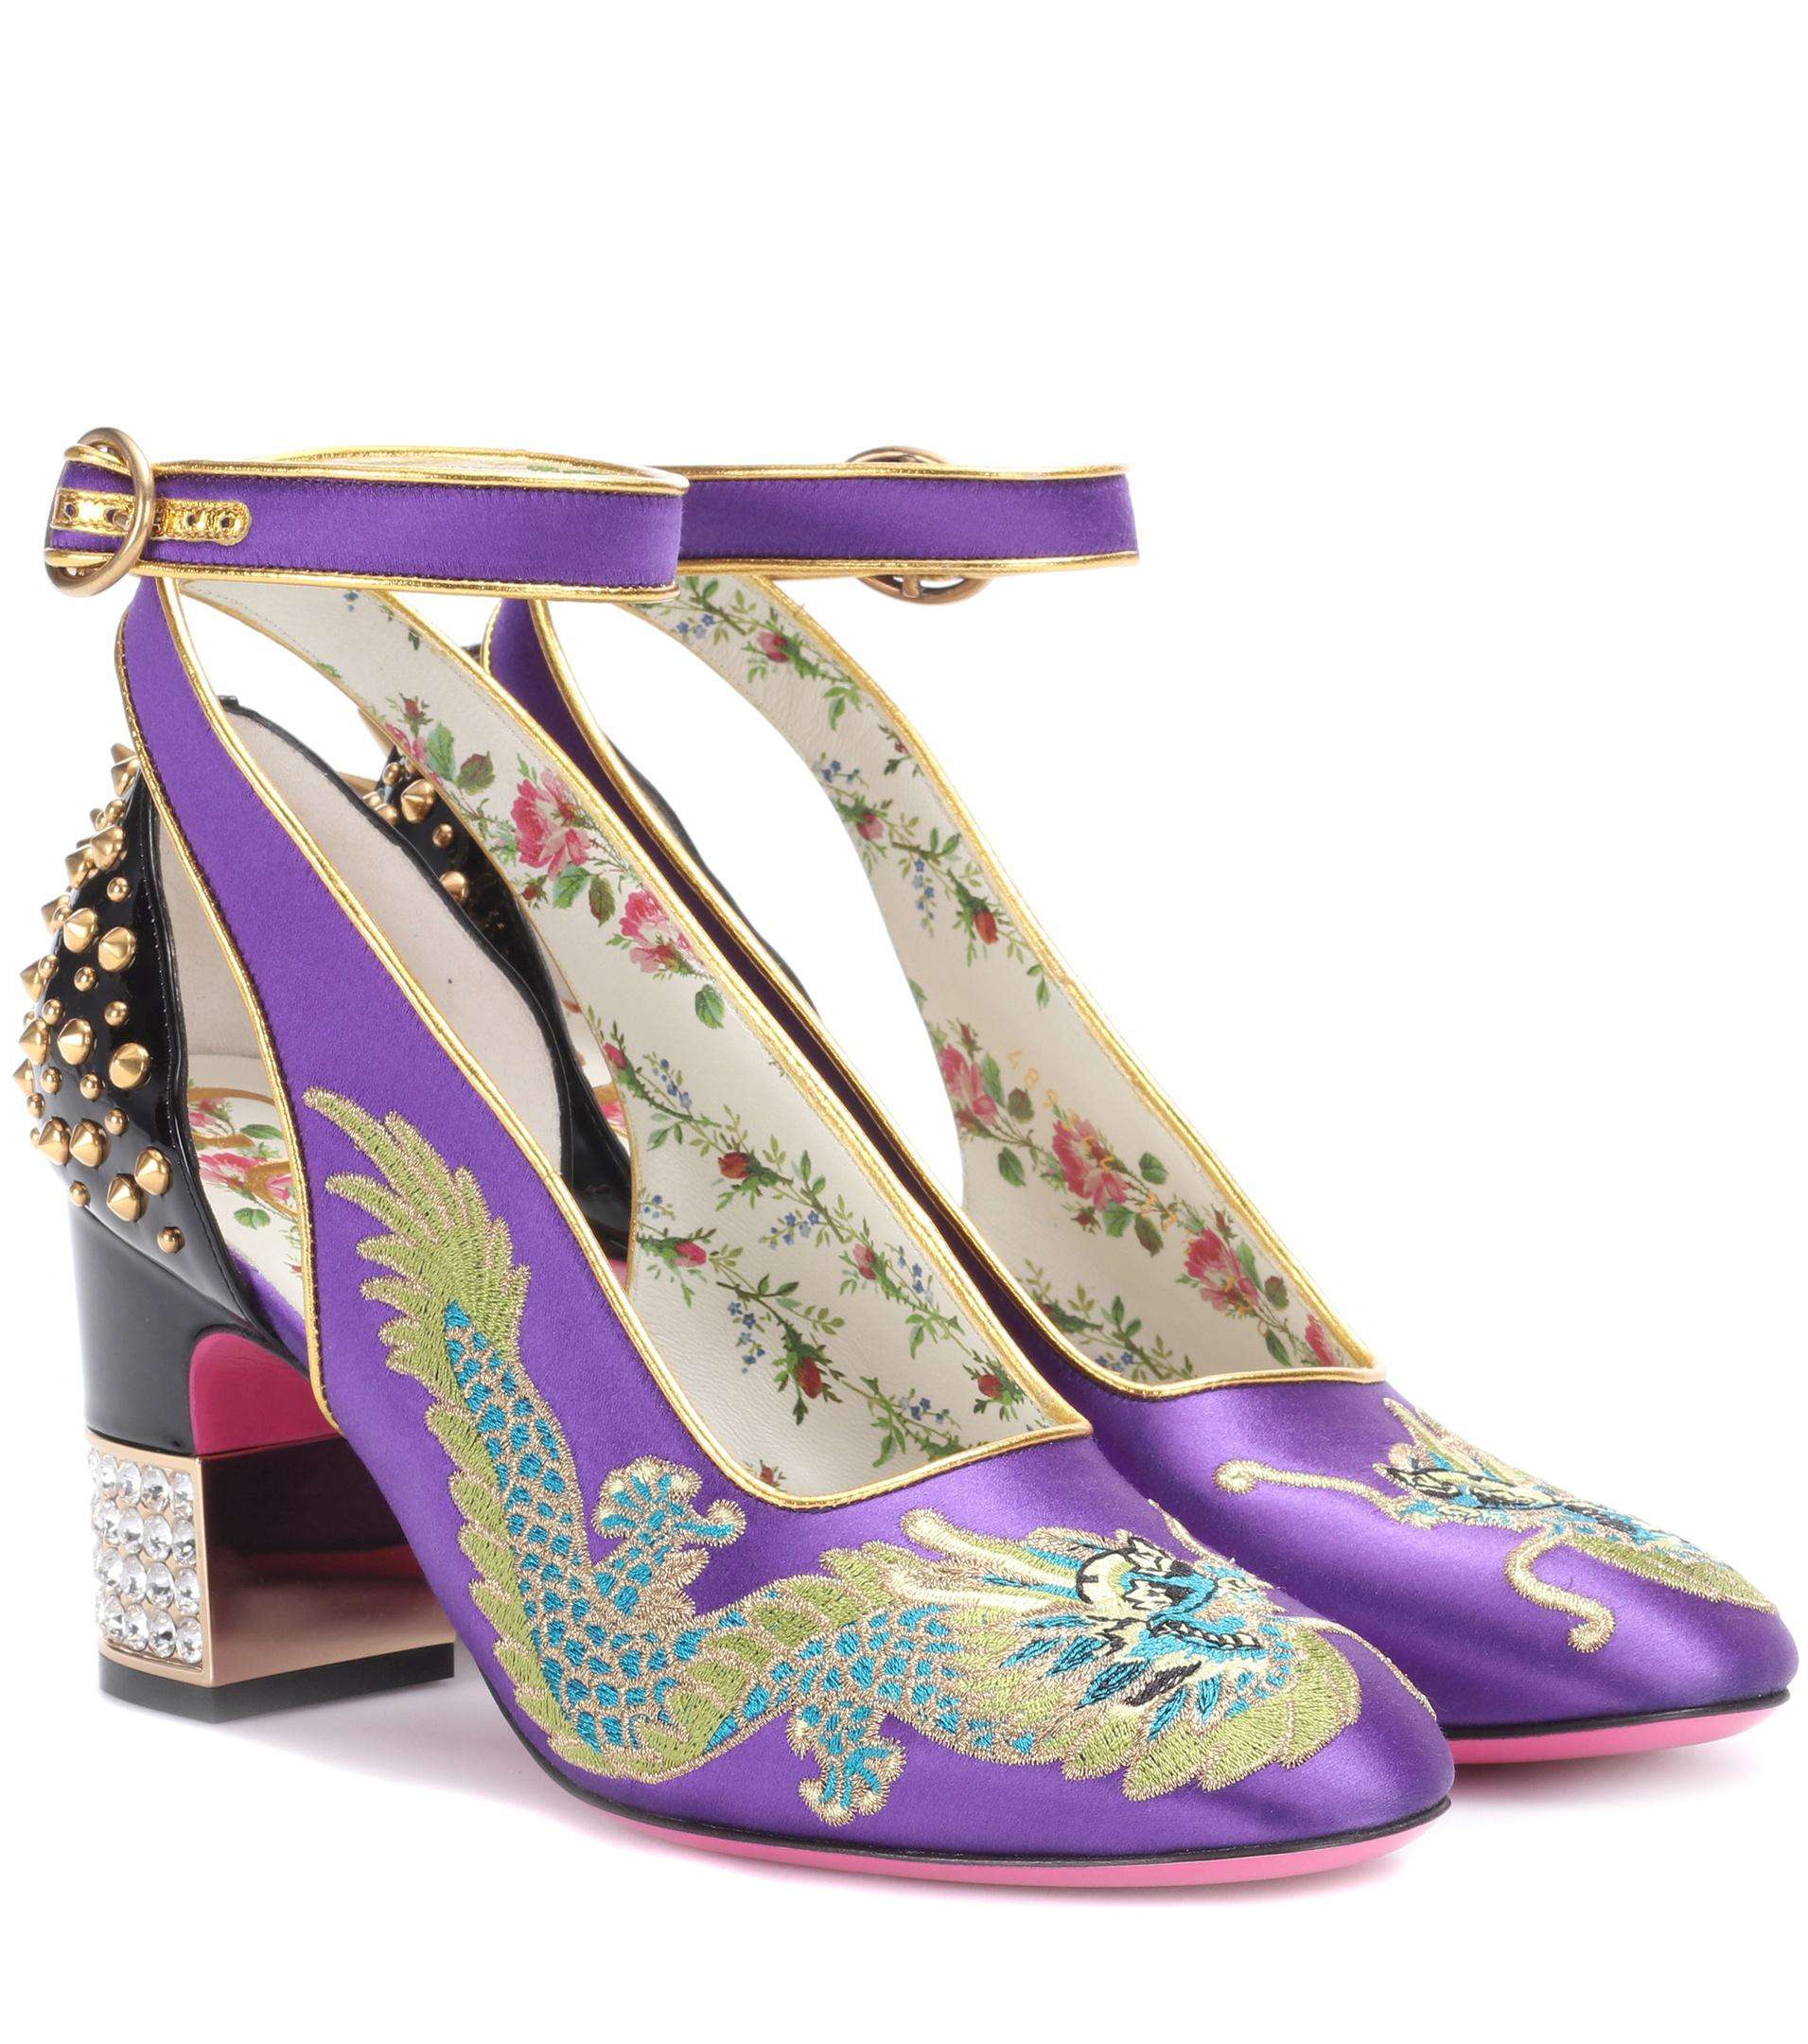 Zrse7c7PkaEmbroidered satin and leather pumps